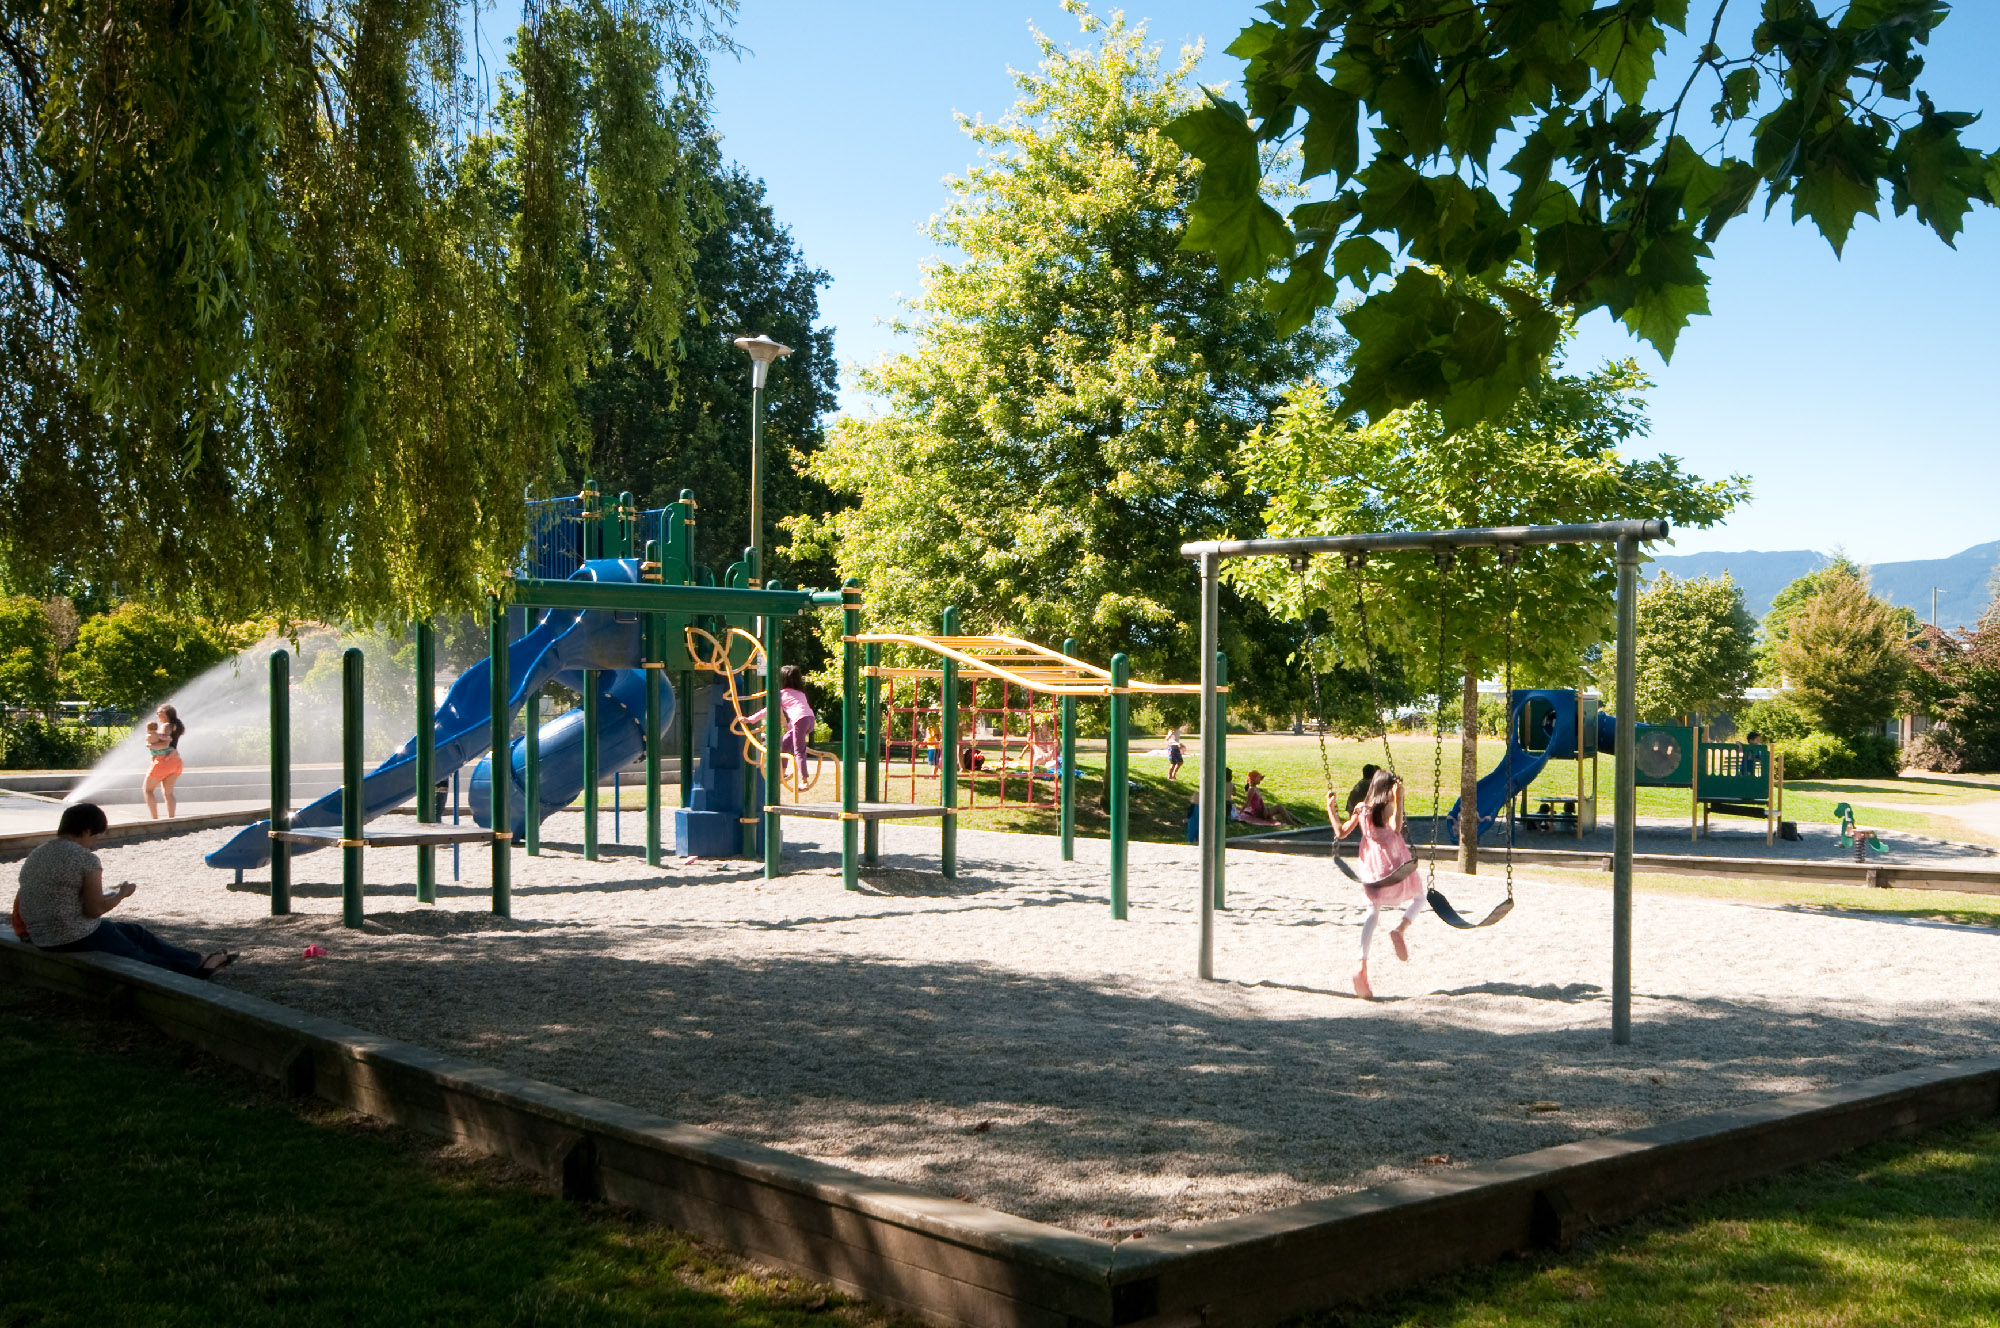 Playground in Vancouver Fraser neighbourhood